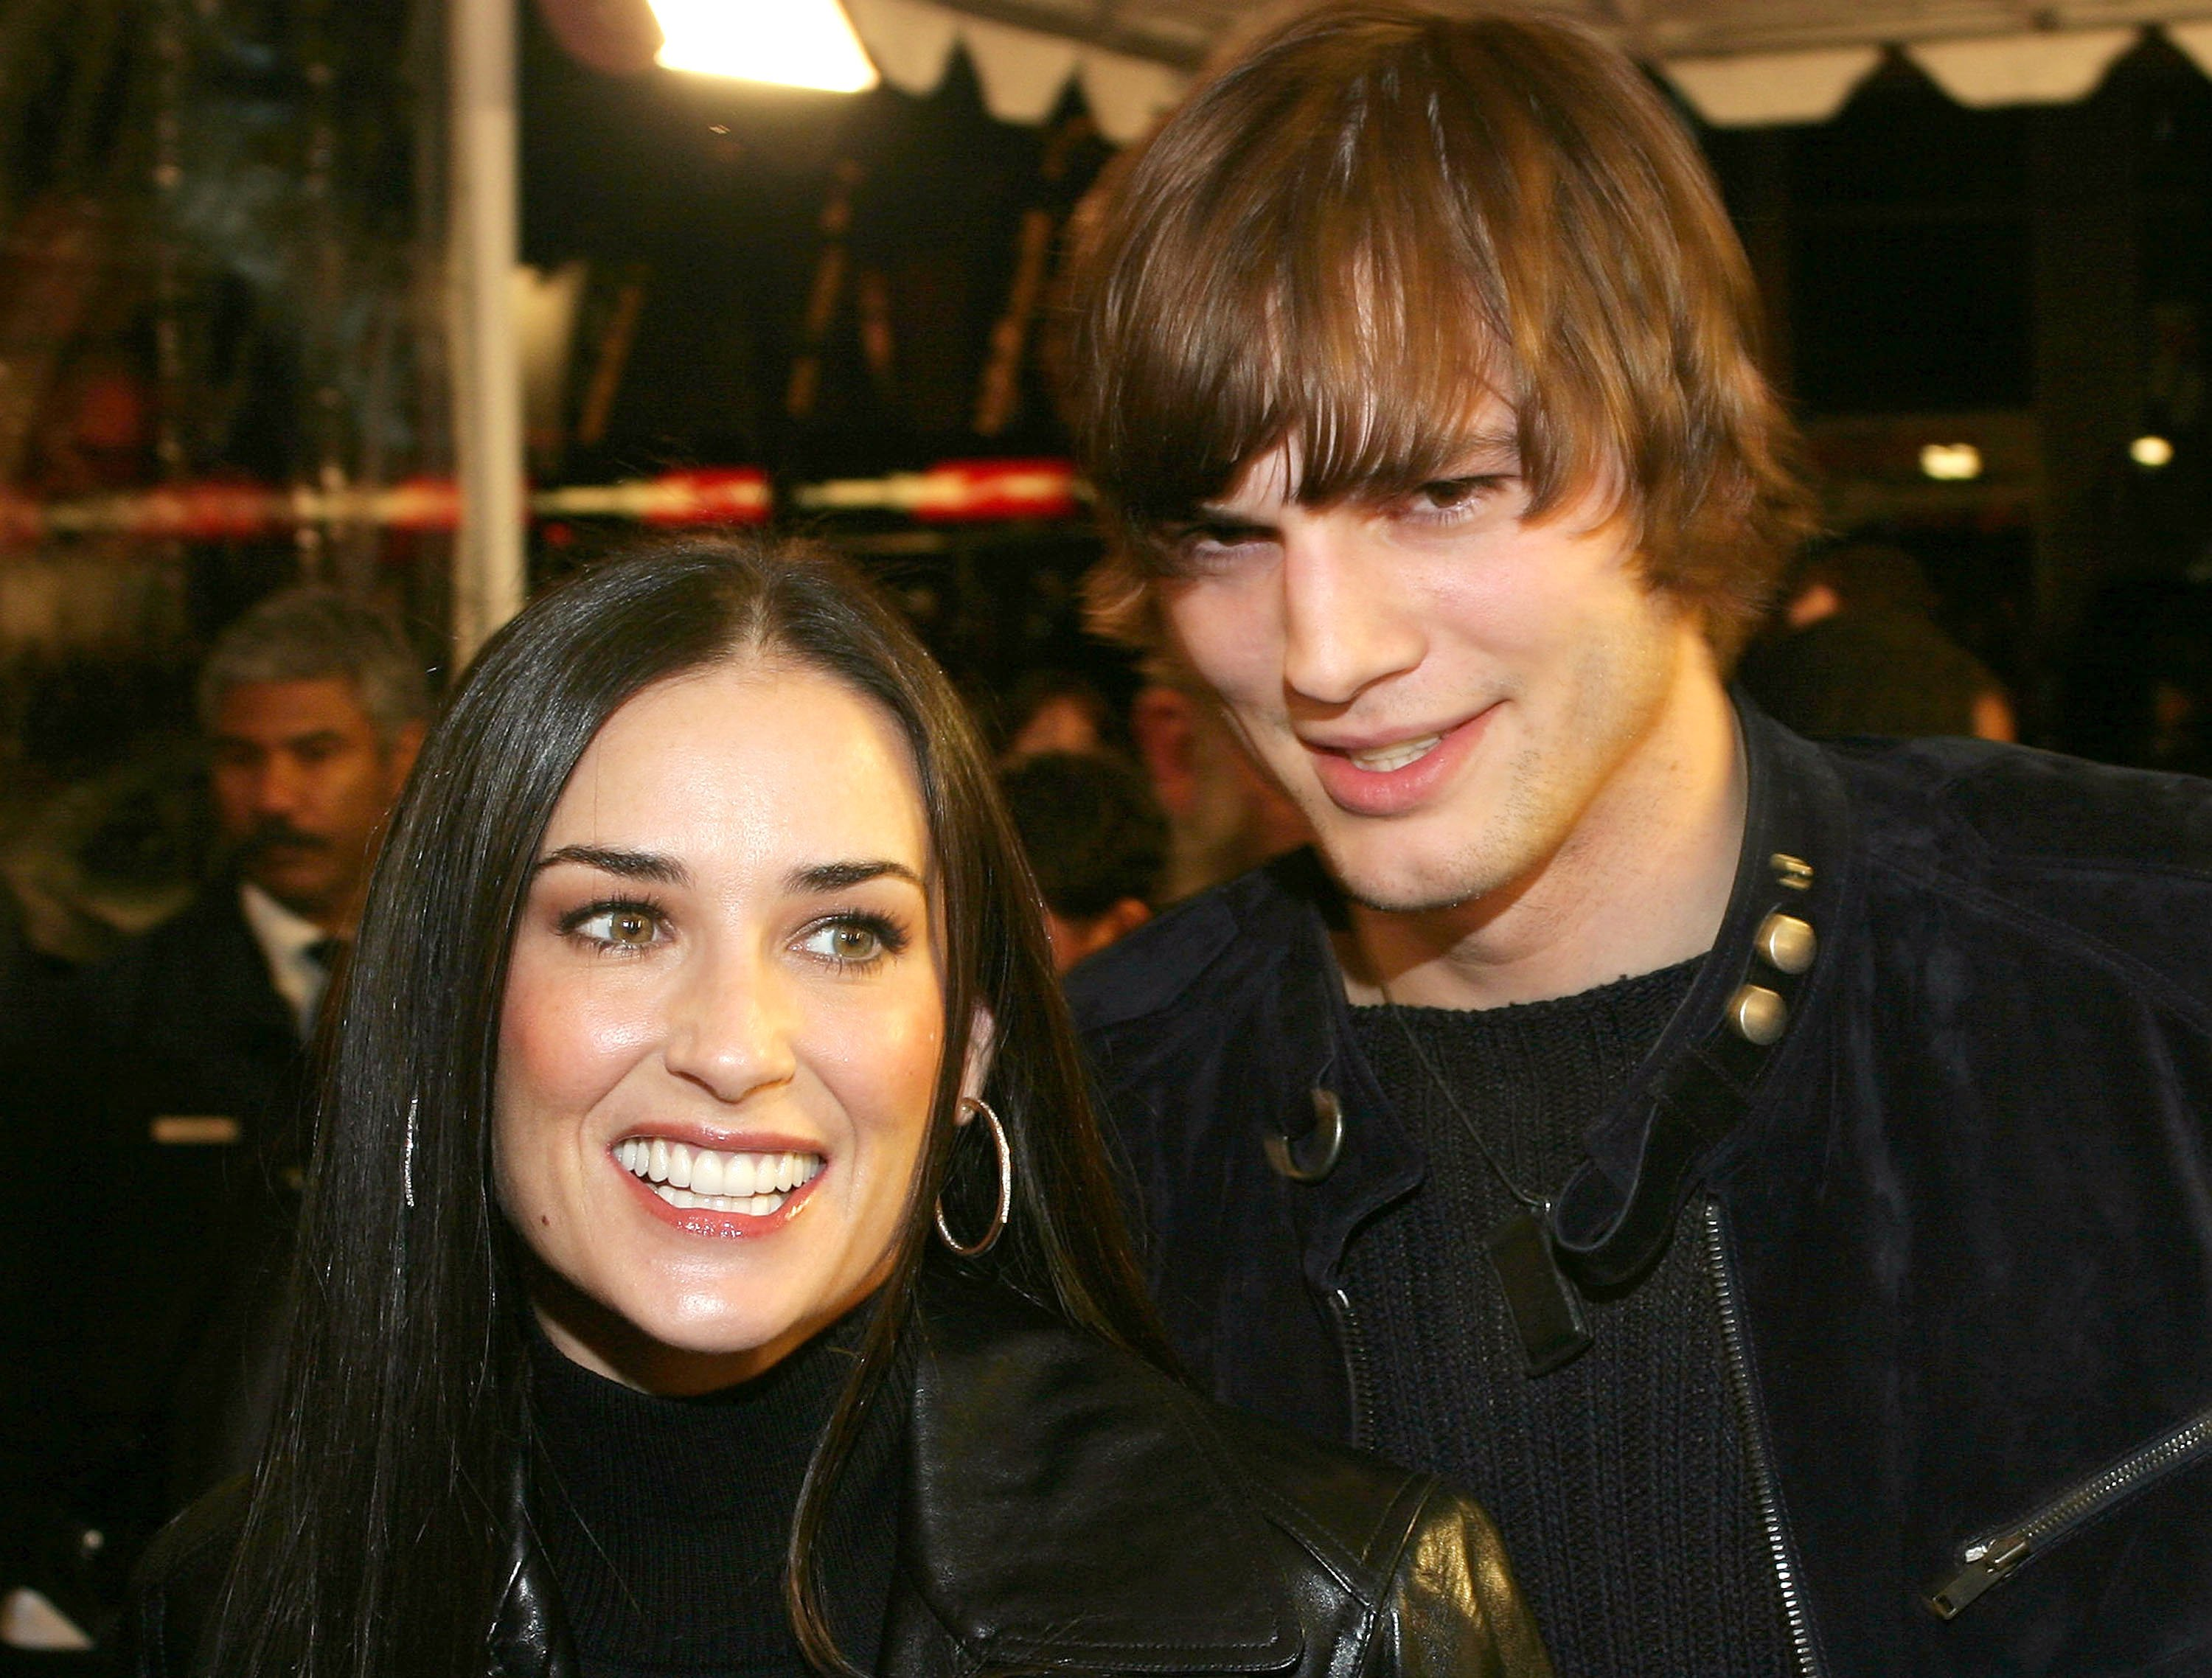 Ashton Kutcher and actress Demi Moore attend the Cheaper By The Dozen Premiere | Source: Getty Images